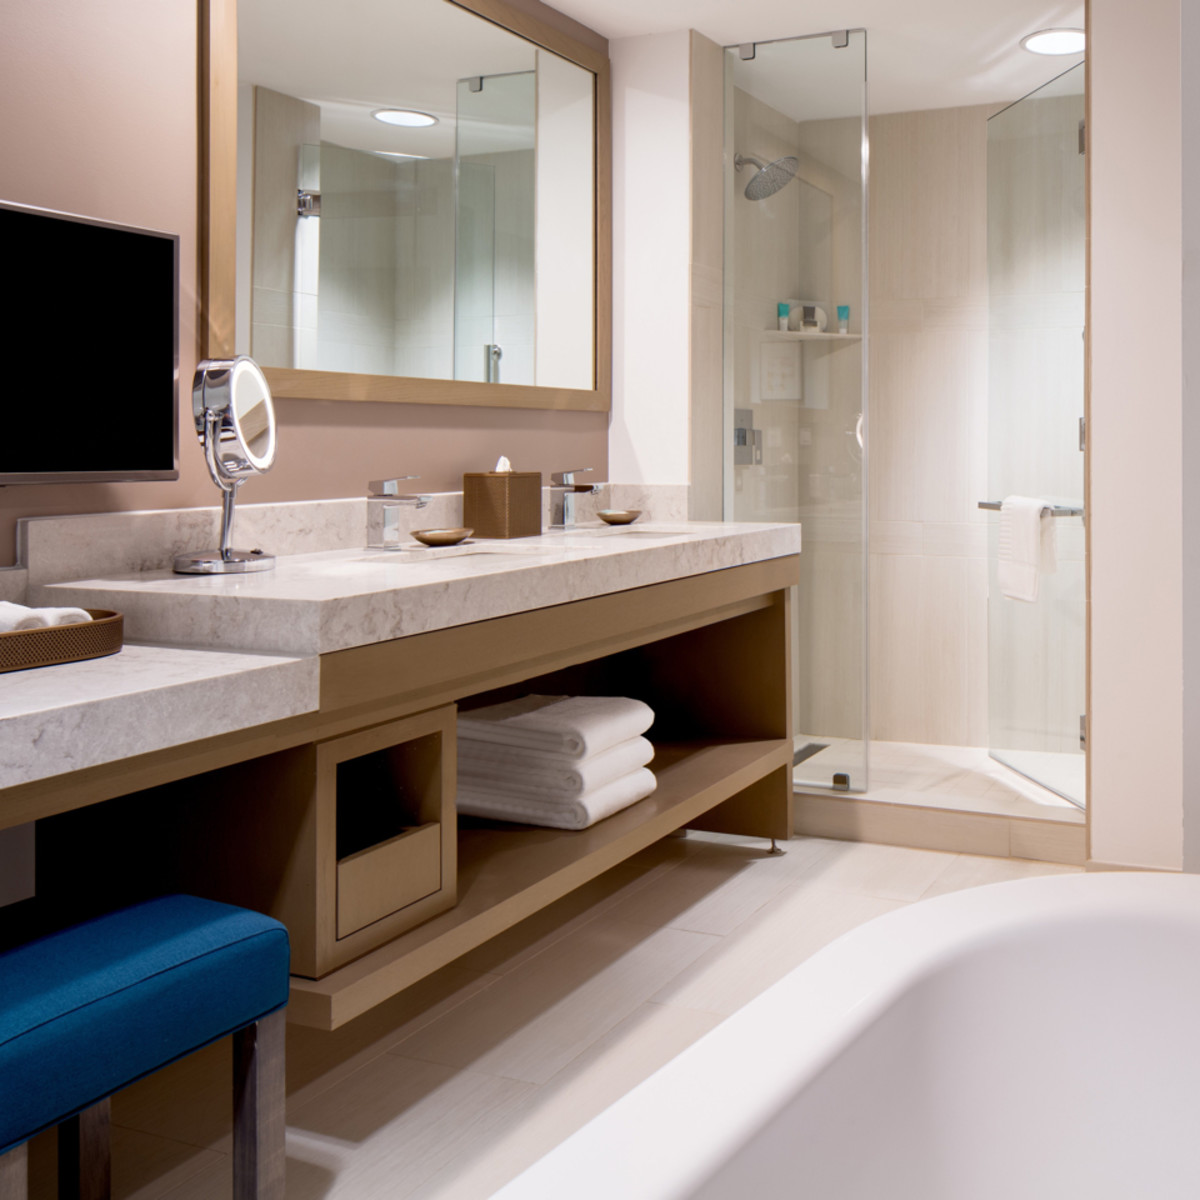 Hyatt Regency two story suites master bath 2